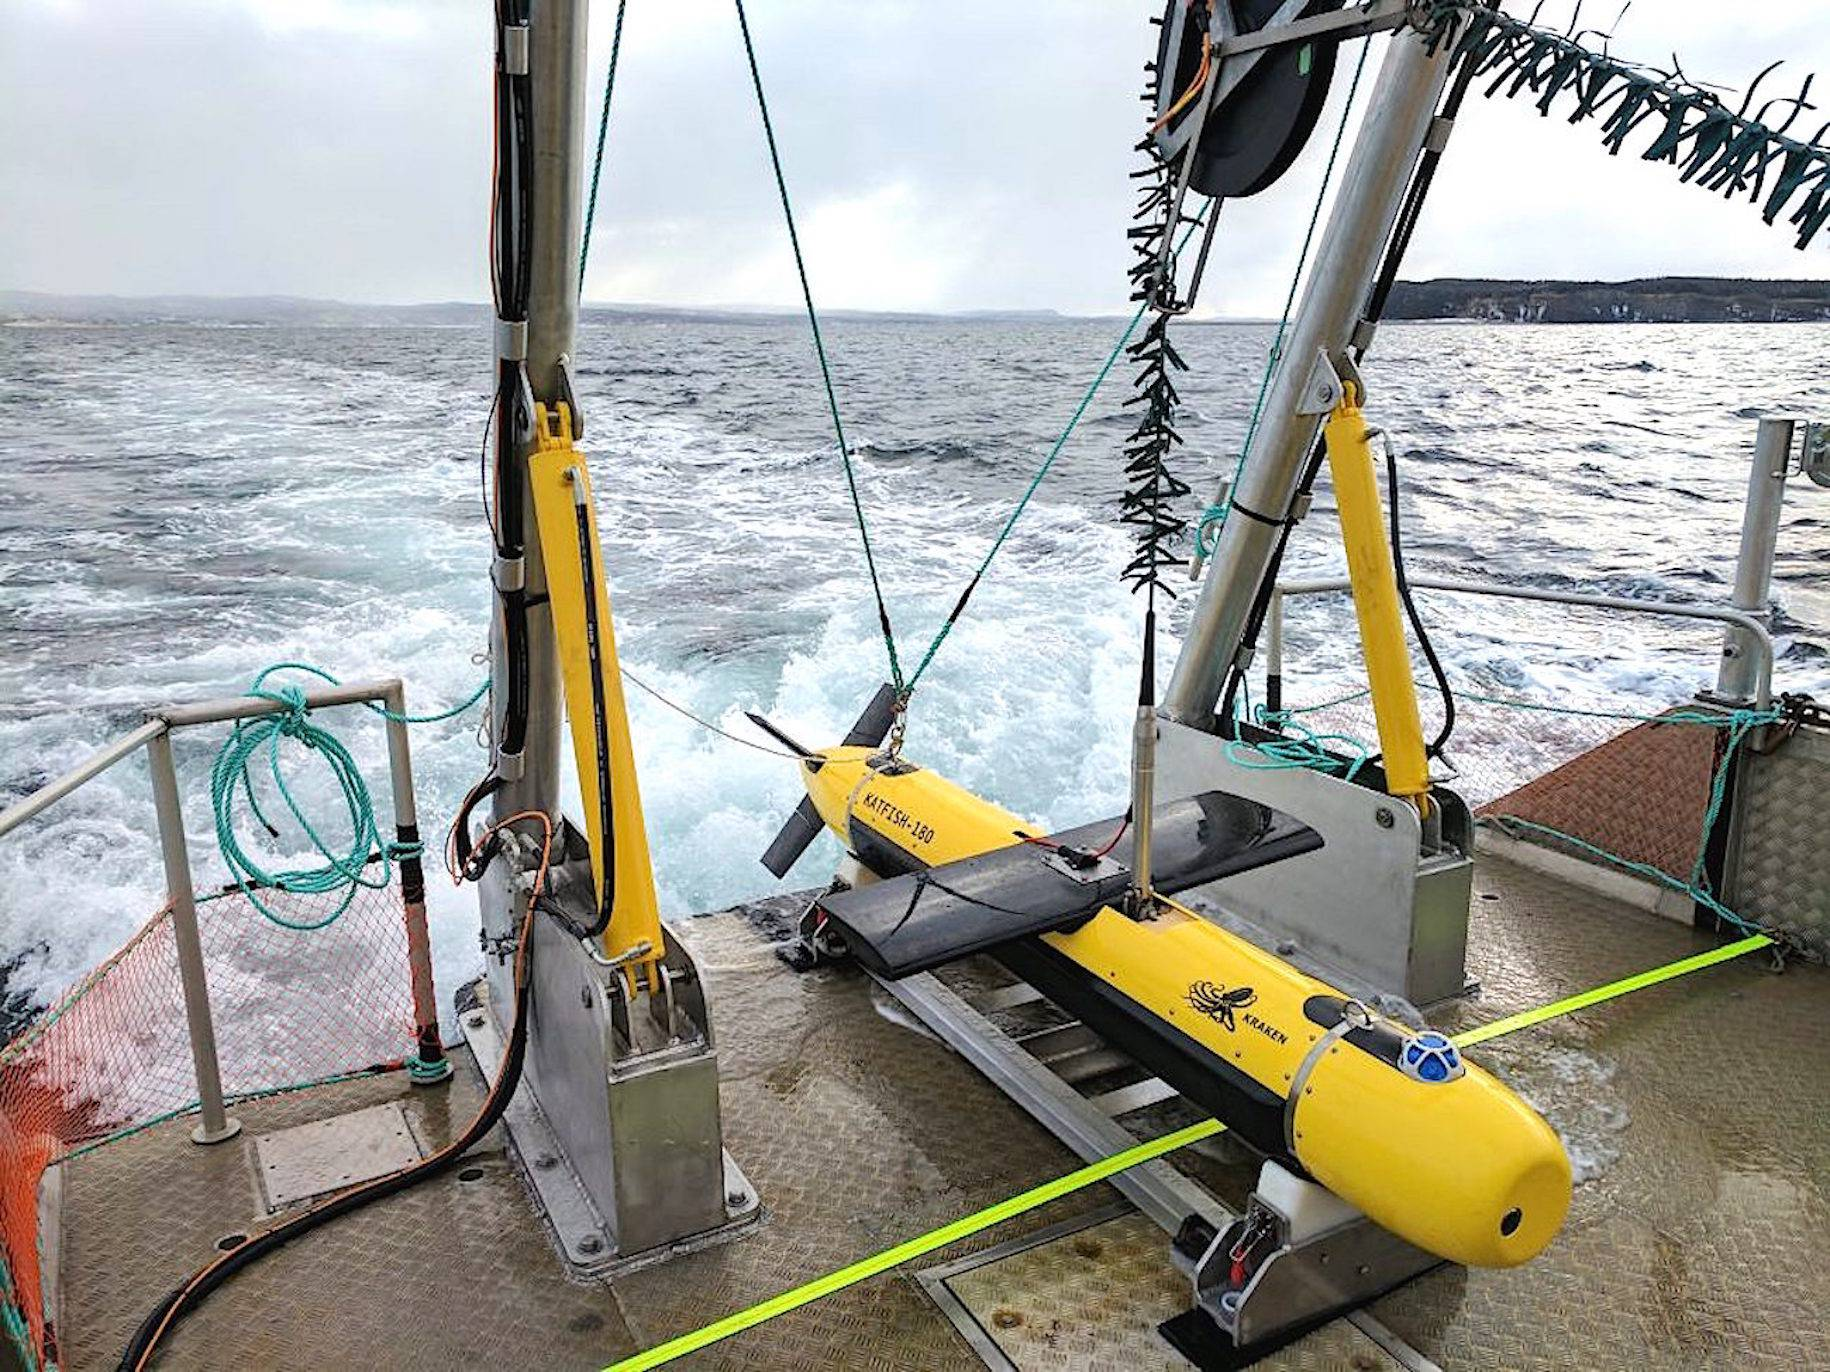 Kraken Robotic's Katfish, a high-speed device used to map the ocean bed in ultra-high definition. Kraken has delivered two Katfish to an American customer specializing in underwater security. The second sale was a big factor in Kraken's financial report for the opening quarter of 2020, which showed the Mount Pearl-based company with a net profit for the first time. - Contributed